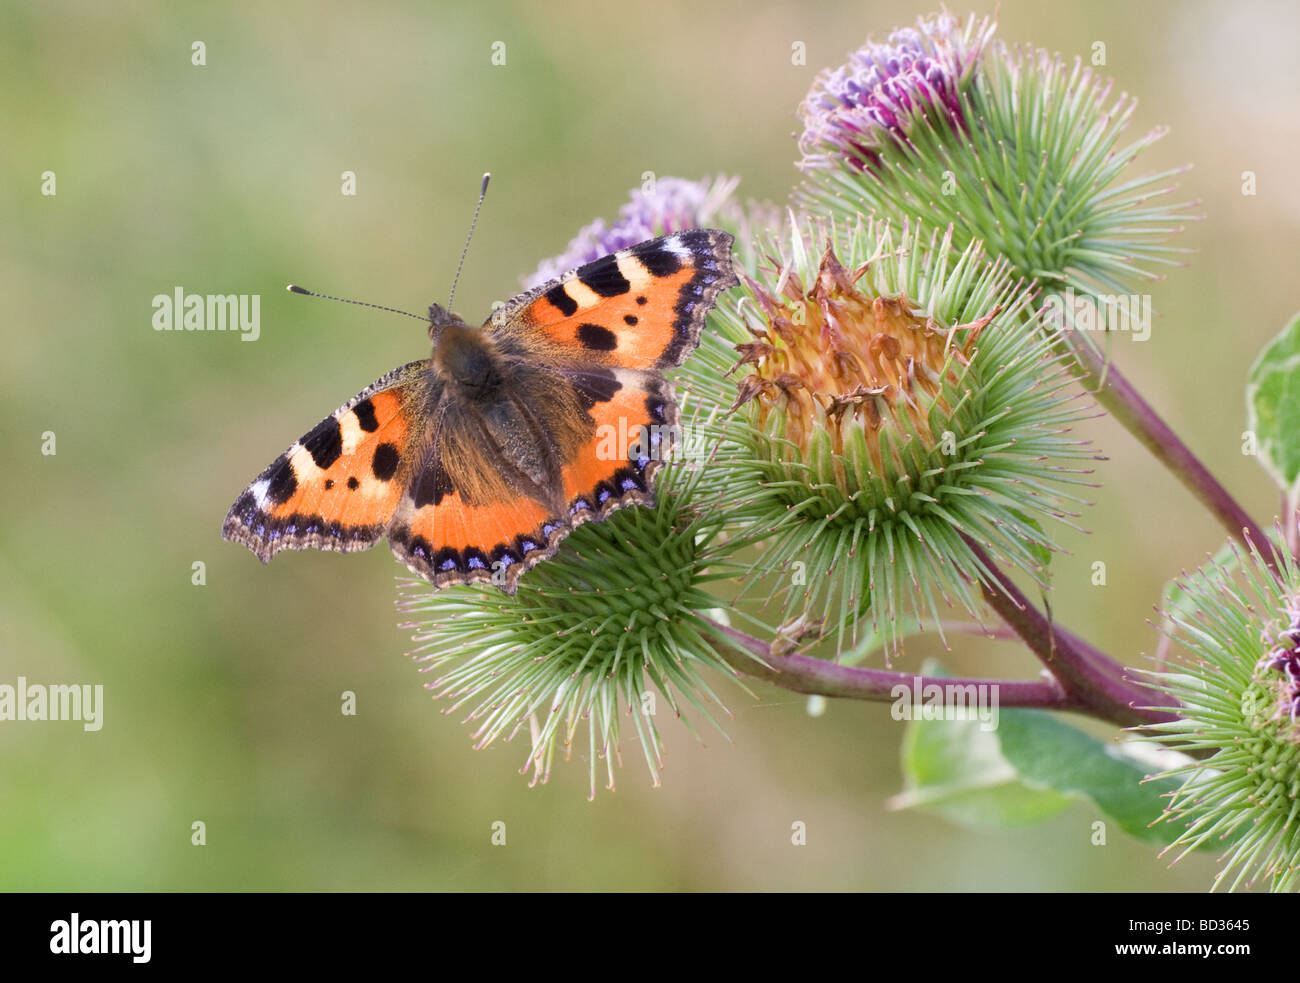 Small Tortoiseshell butterfly (aglais urticae) settled with wings open on a burdock plant - Stock Image